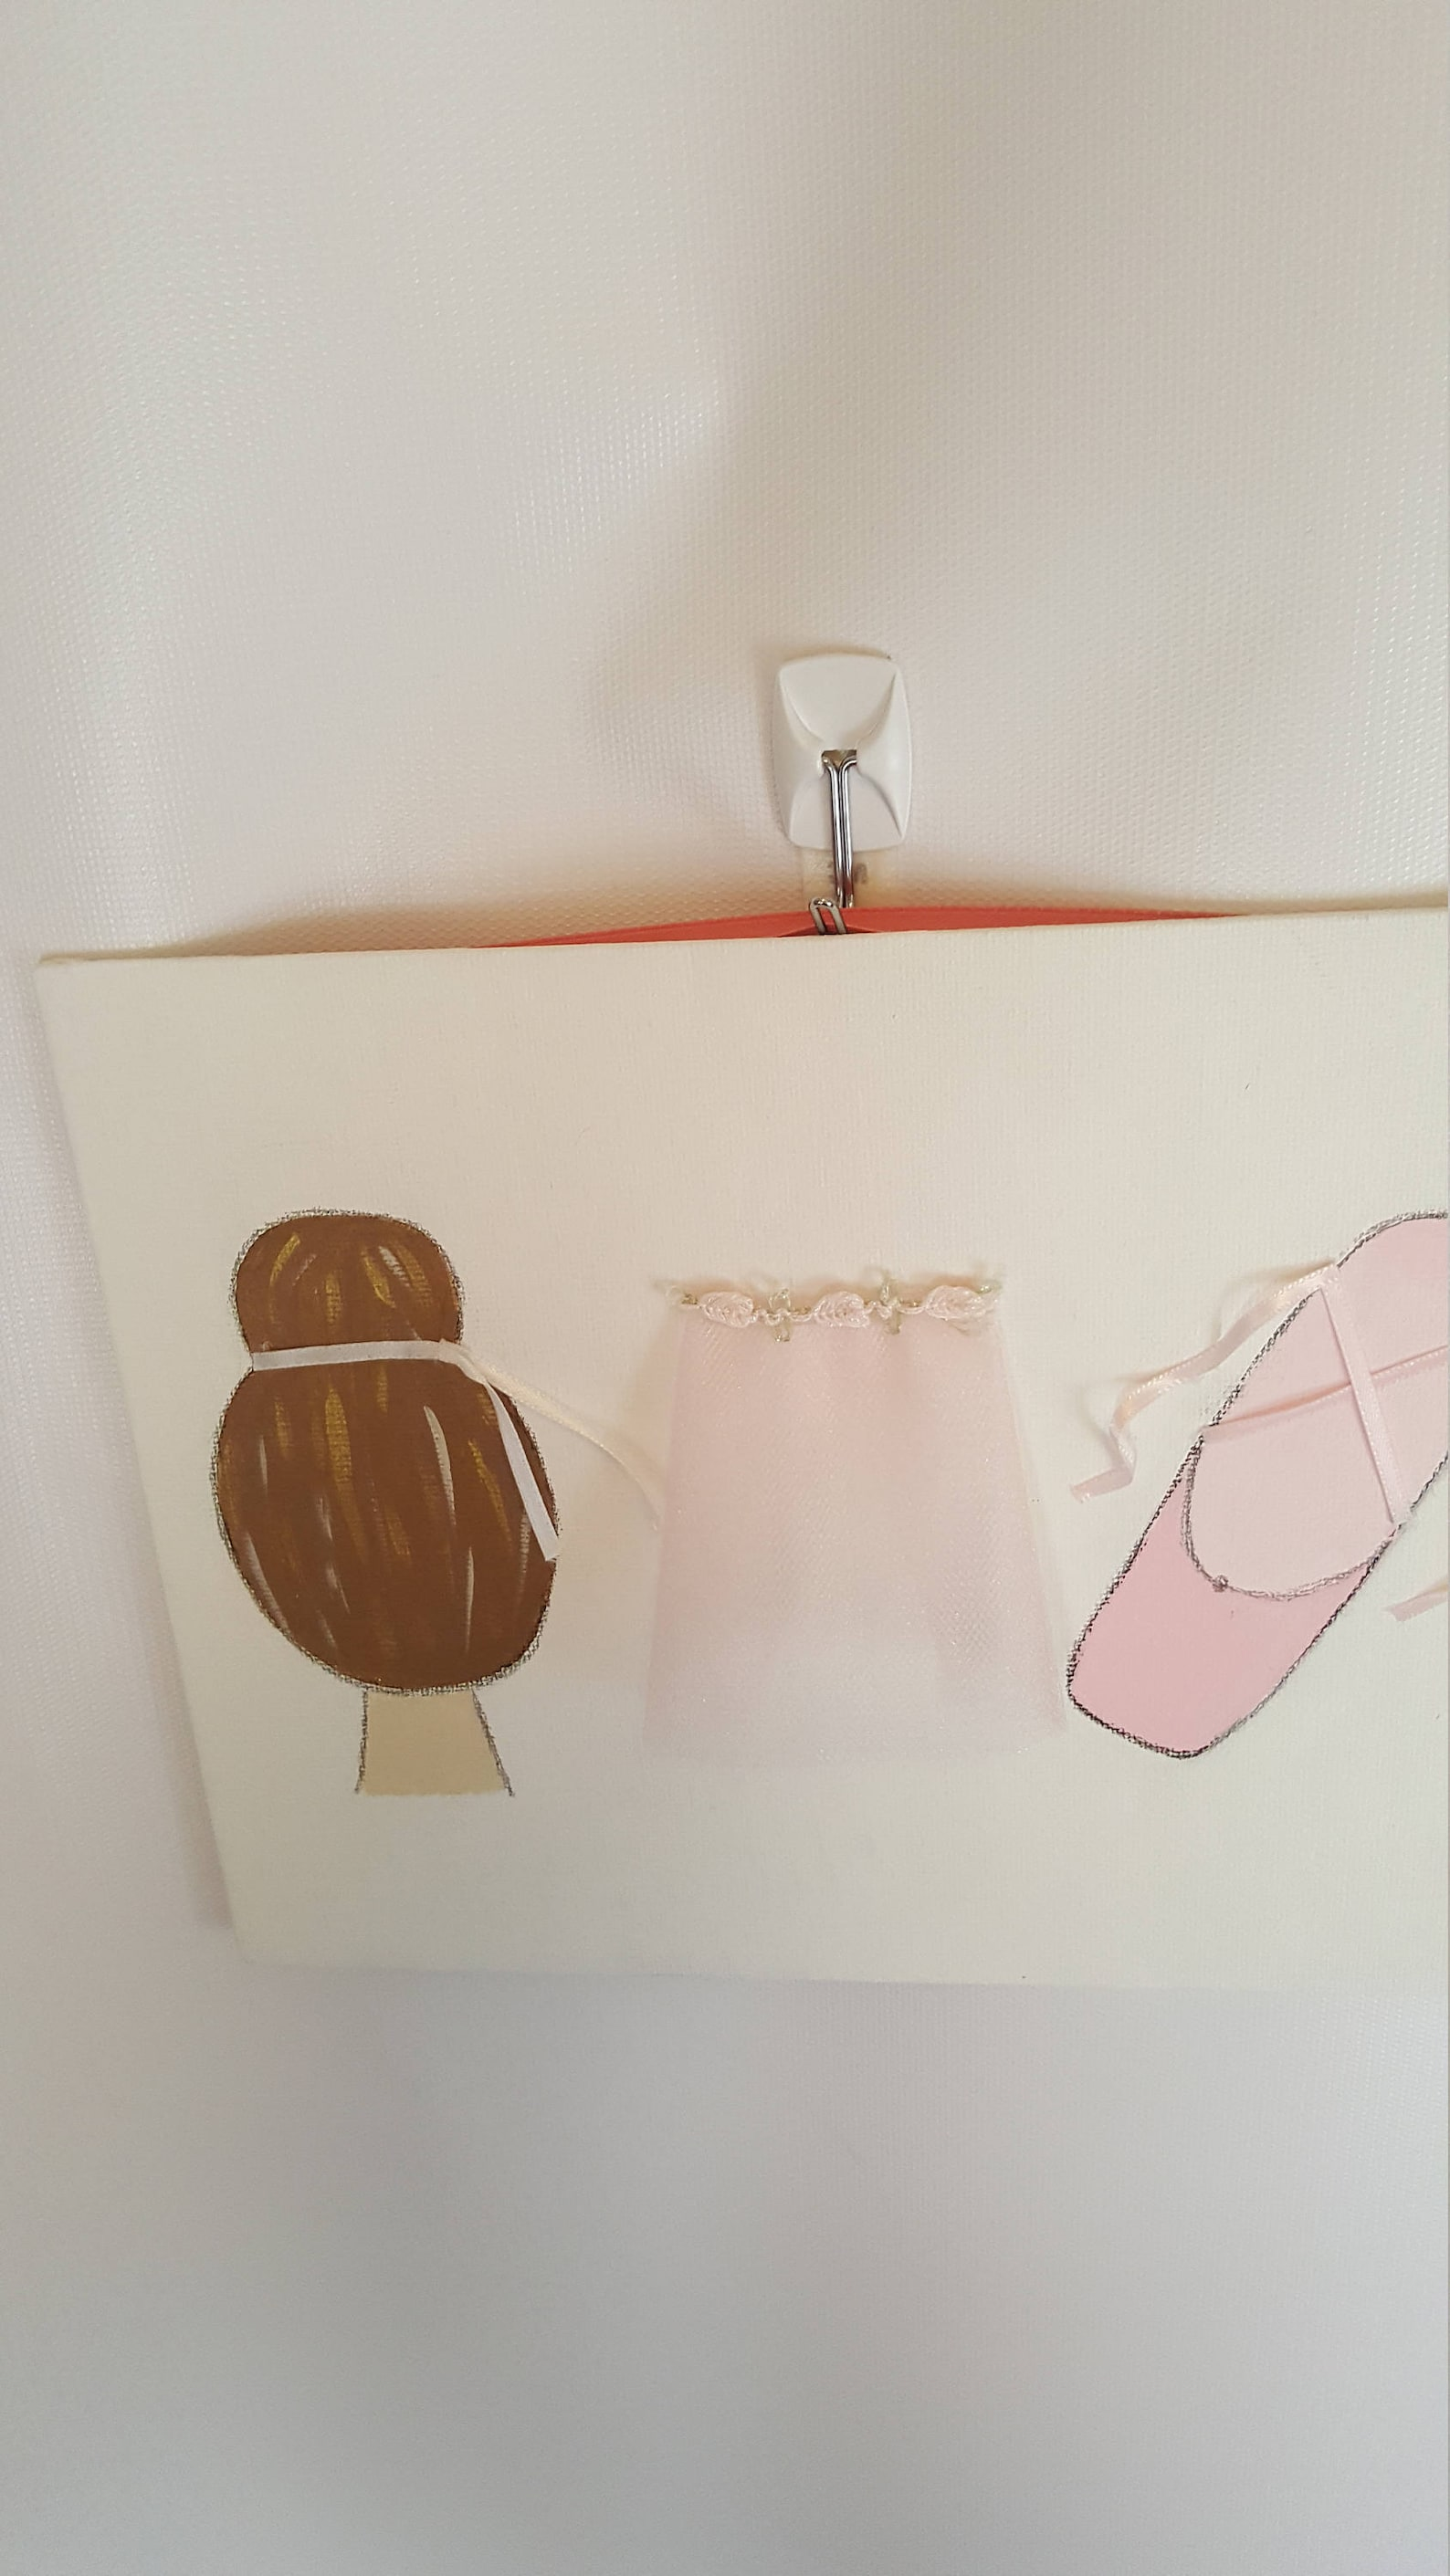 bun, tutu and shoes painting, ballet bun, tiny tutu, pointe shoes, ballet painting, ballerina painting, nursery painting, dance